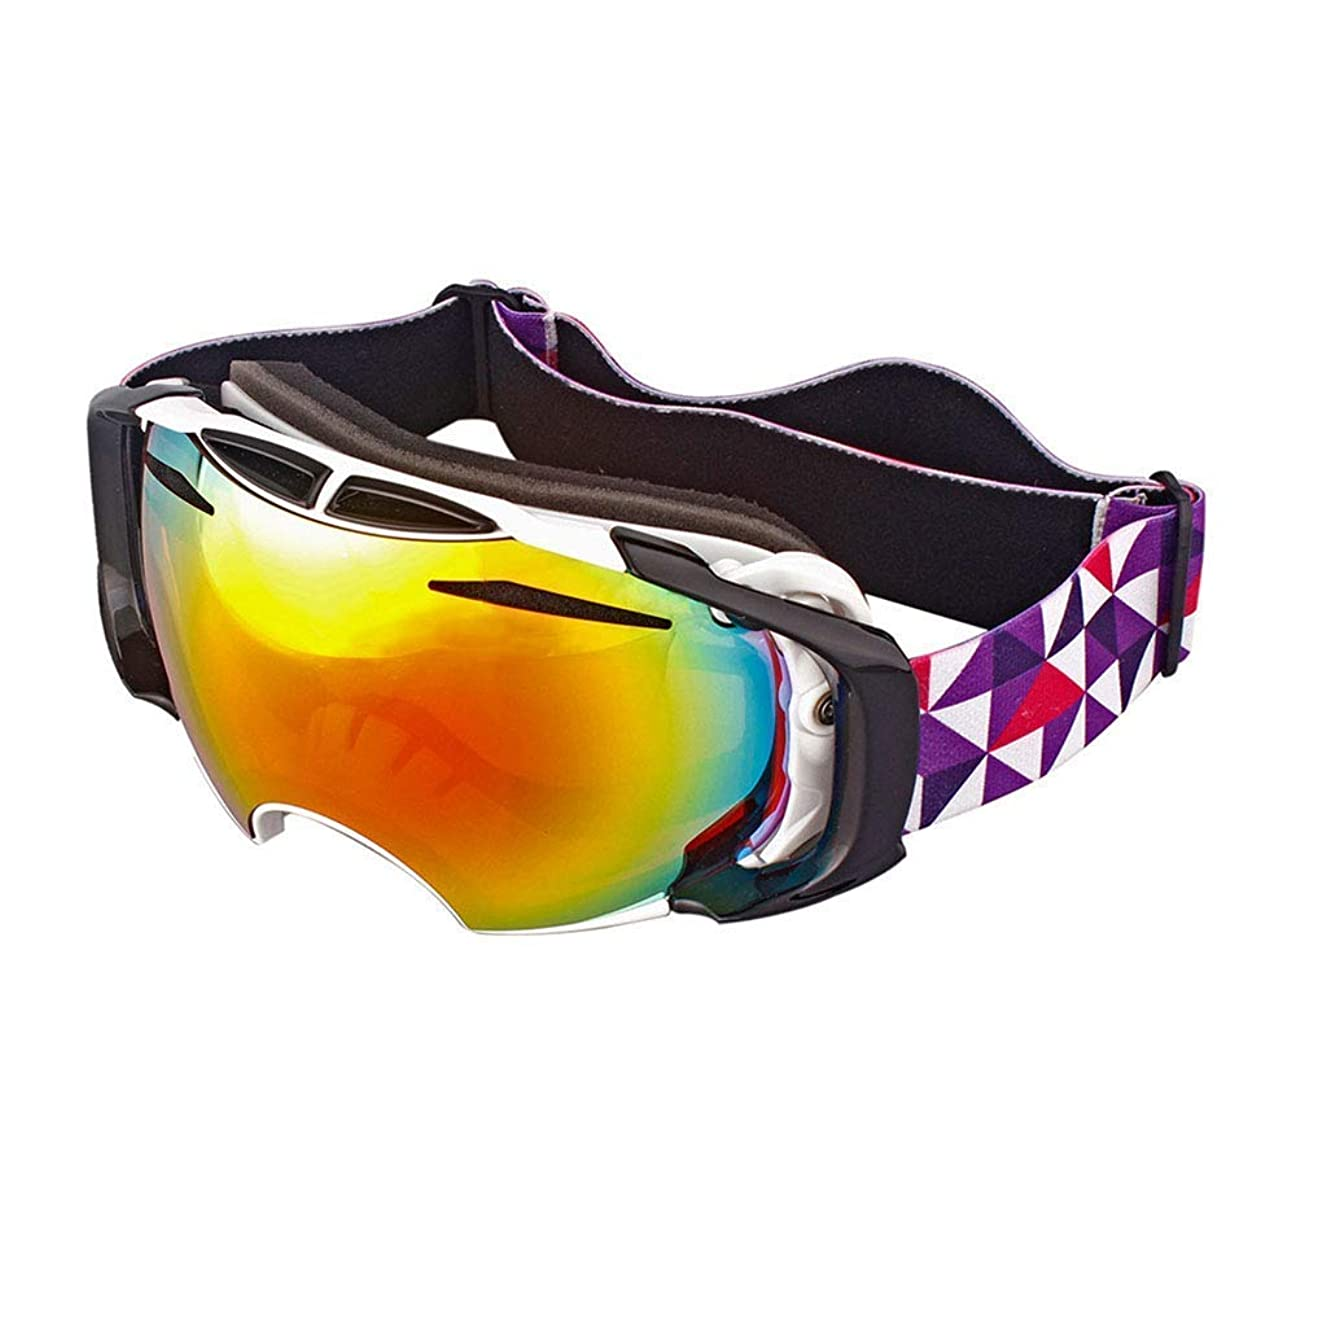 Polymer Exquisite Goggles Ski Goggles Sports Glasses Glasses Professional Double-Layer Anti-Fog Men and Women Large Spherical Ski Goggles - JBP45